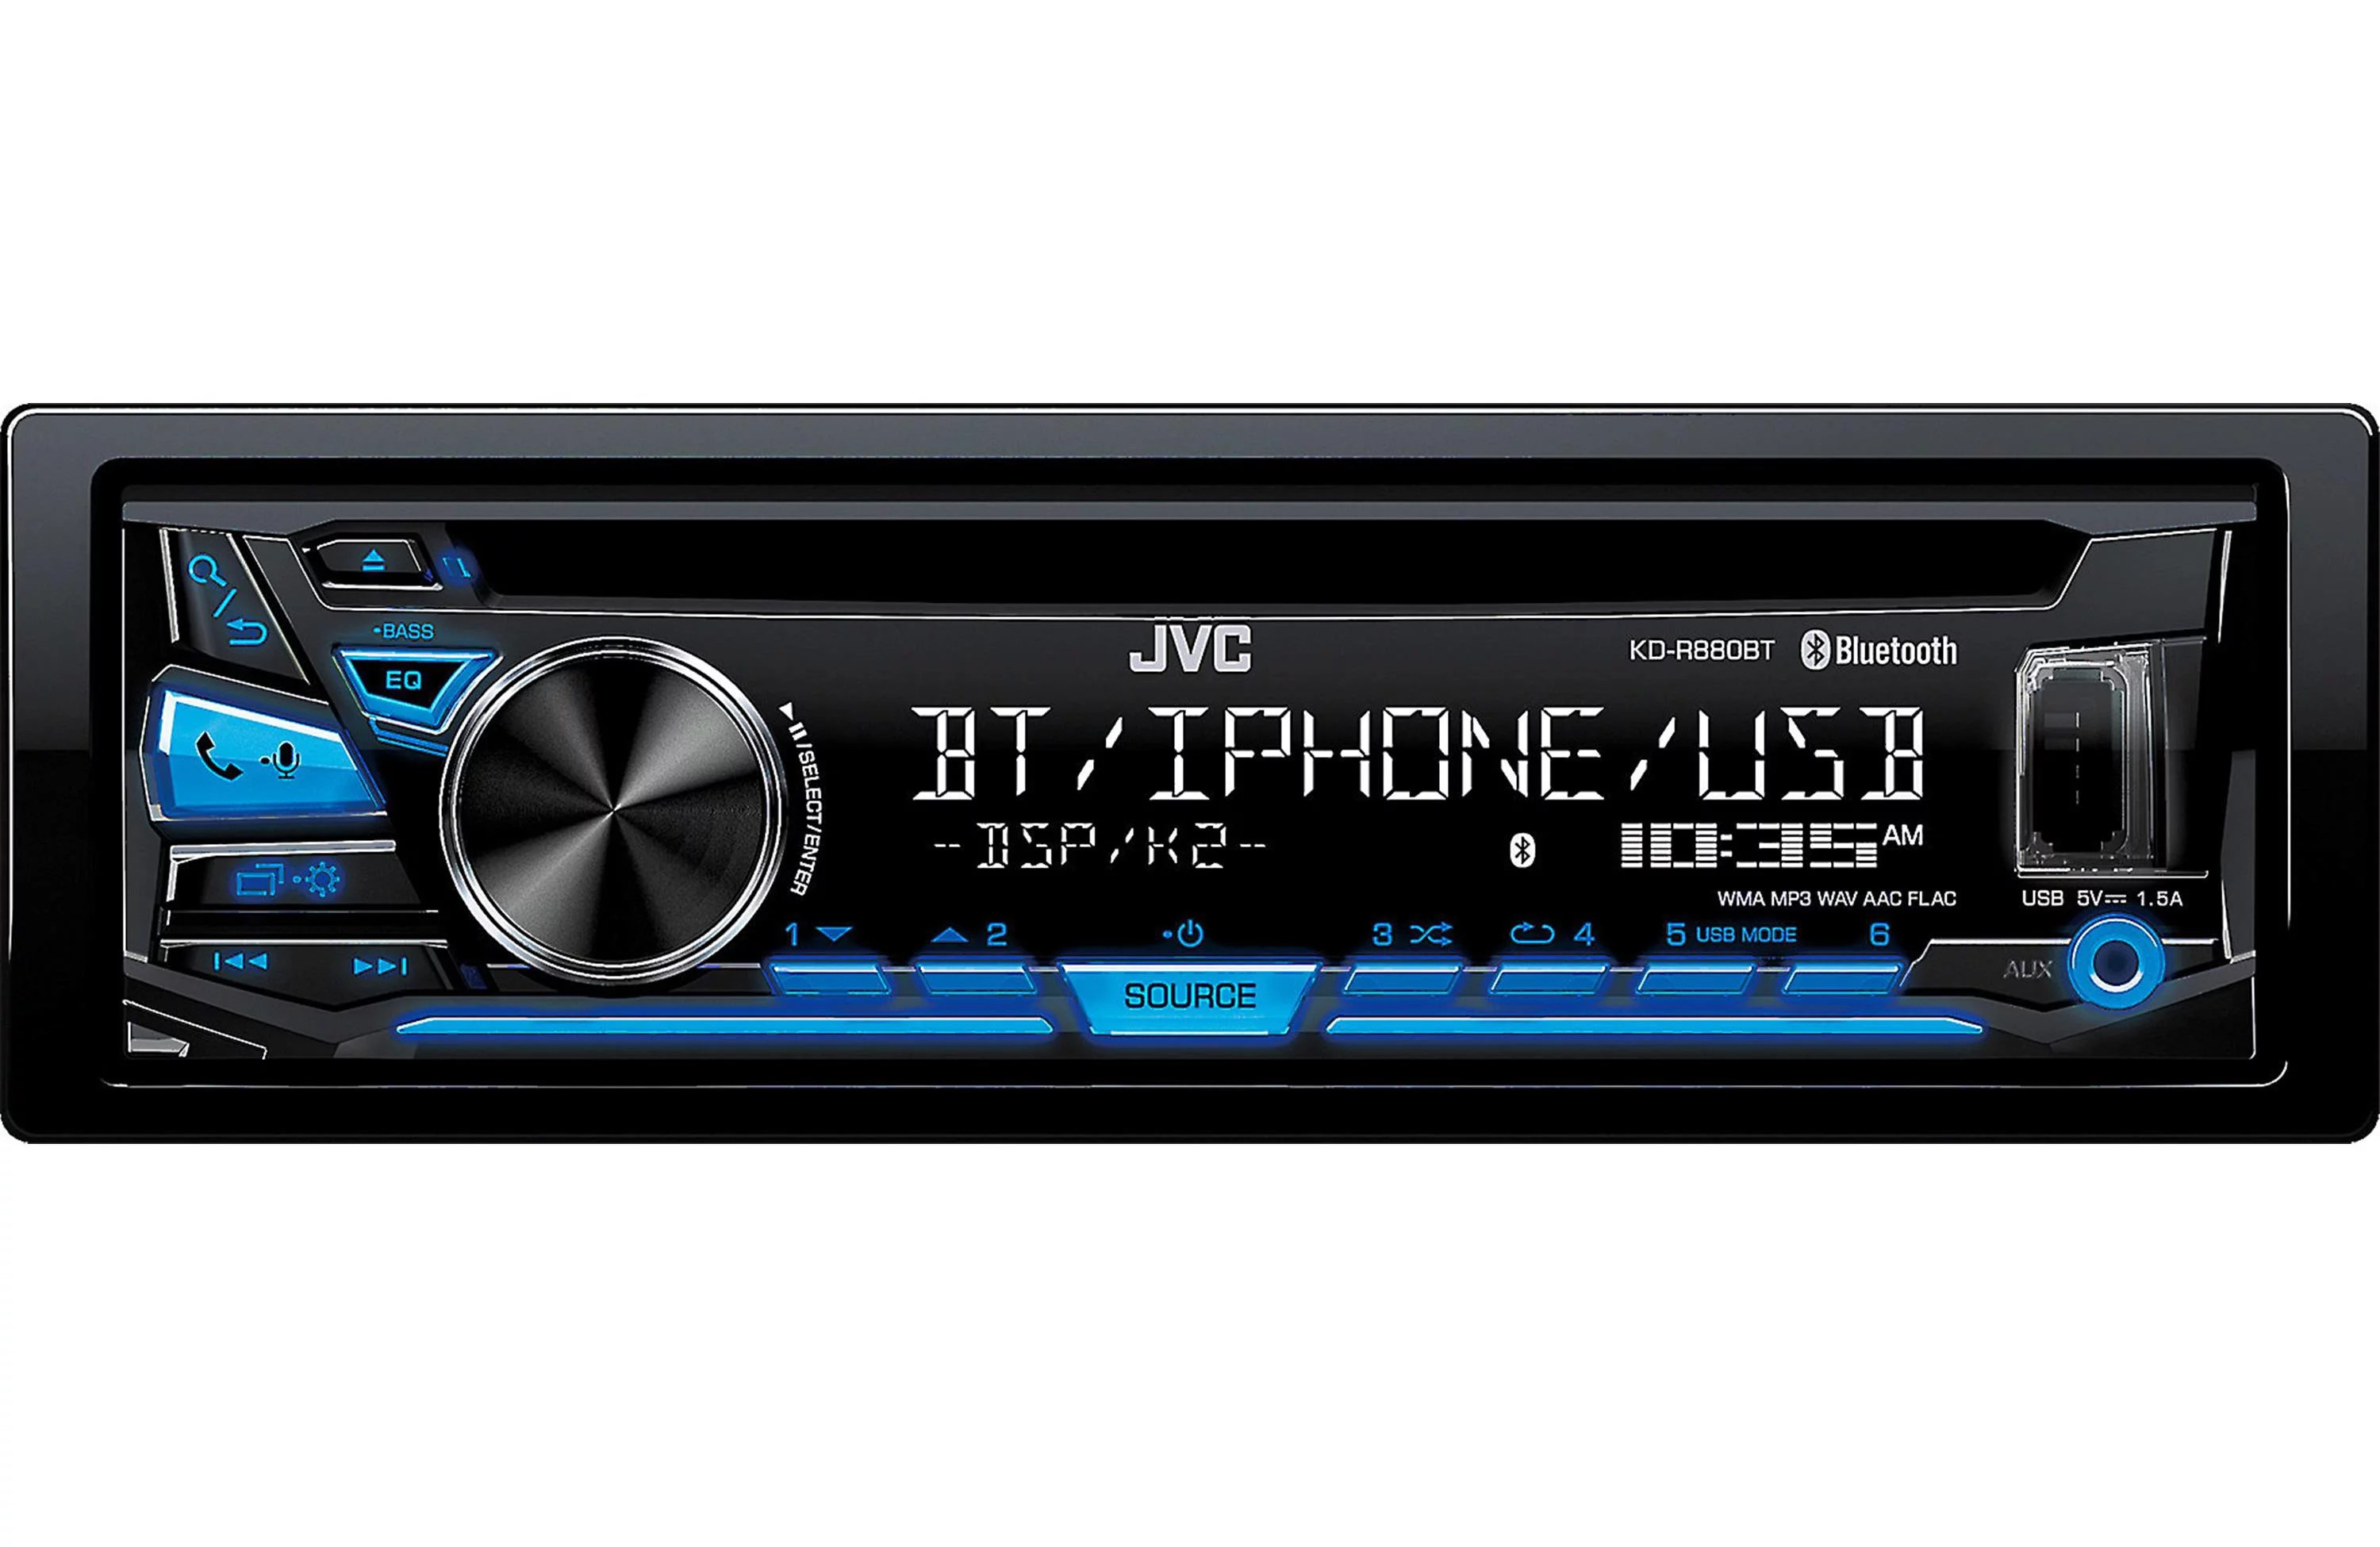 jvc kdsr83bt in dash cd built in bluetooth usb and detachable jvc kd r330 wiring jvc bluetooth wiring diagram [ 3000 x 1950 Pixel ]